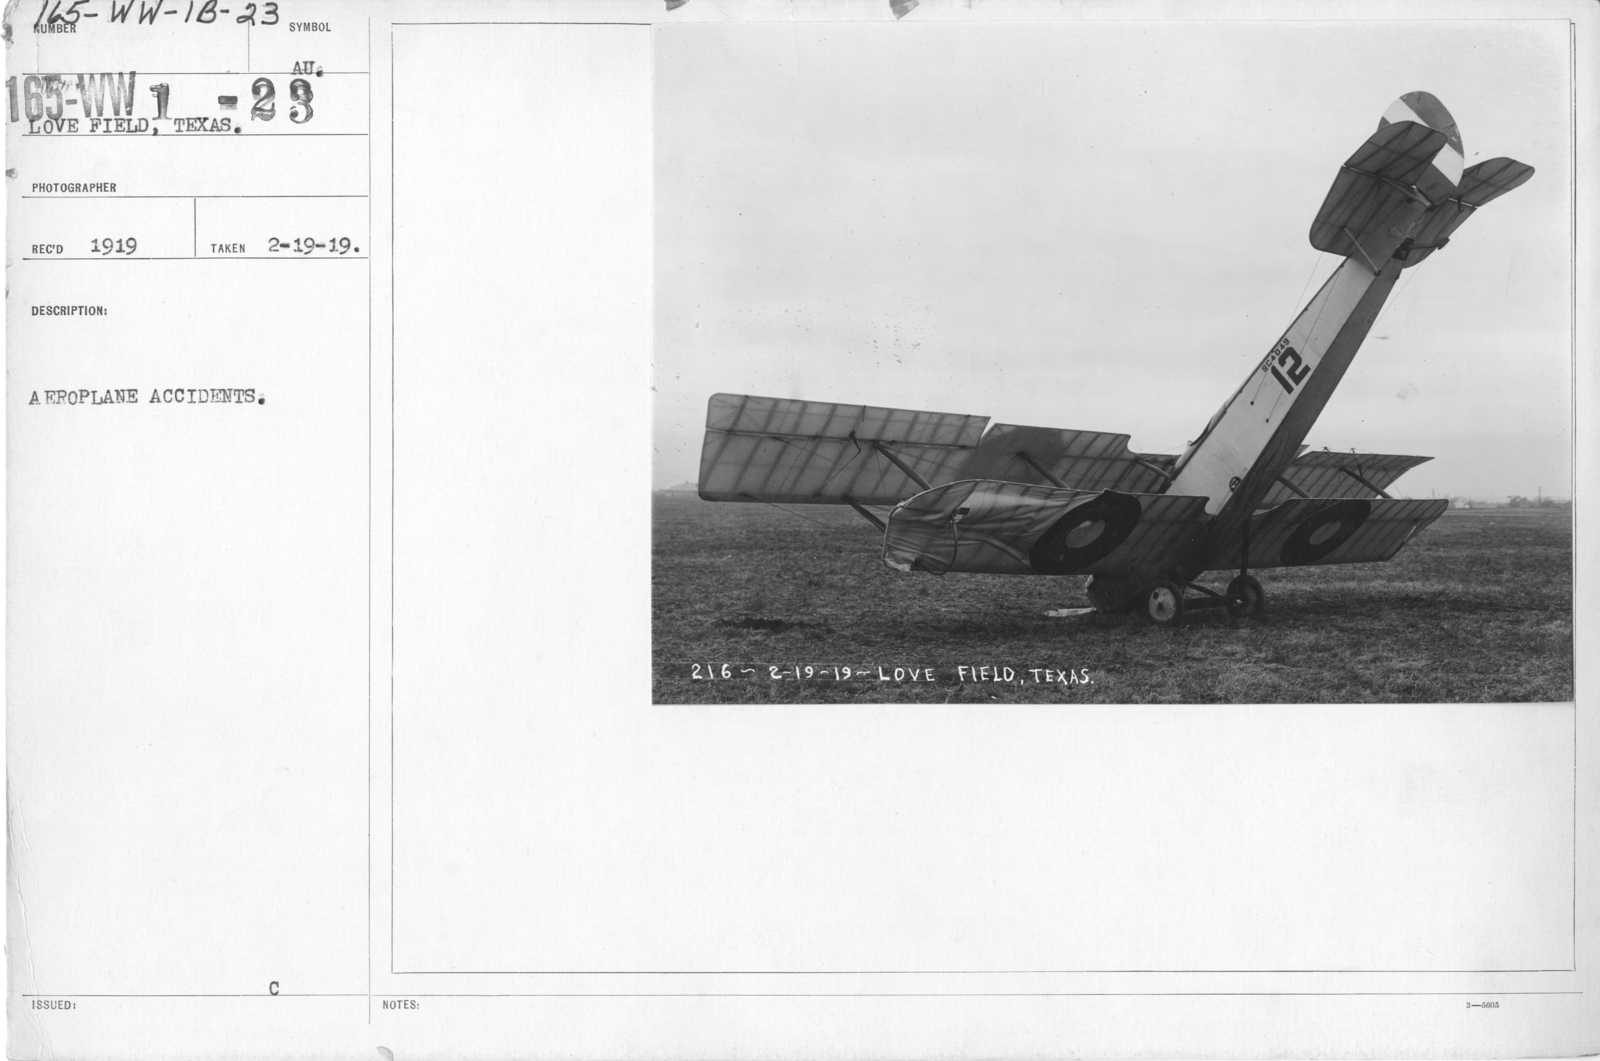 Airplanes - Accidents - Aeroplane Accidents. Love Field, Dallas, Texas